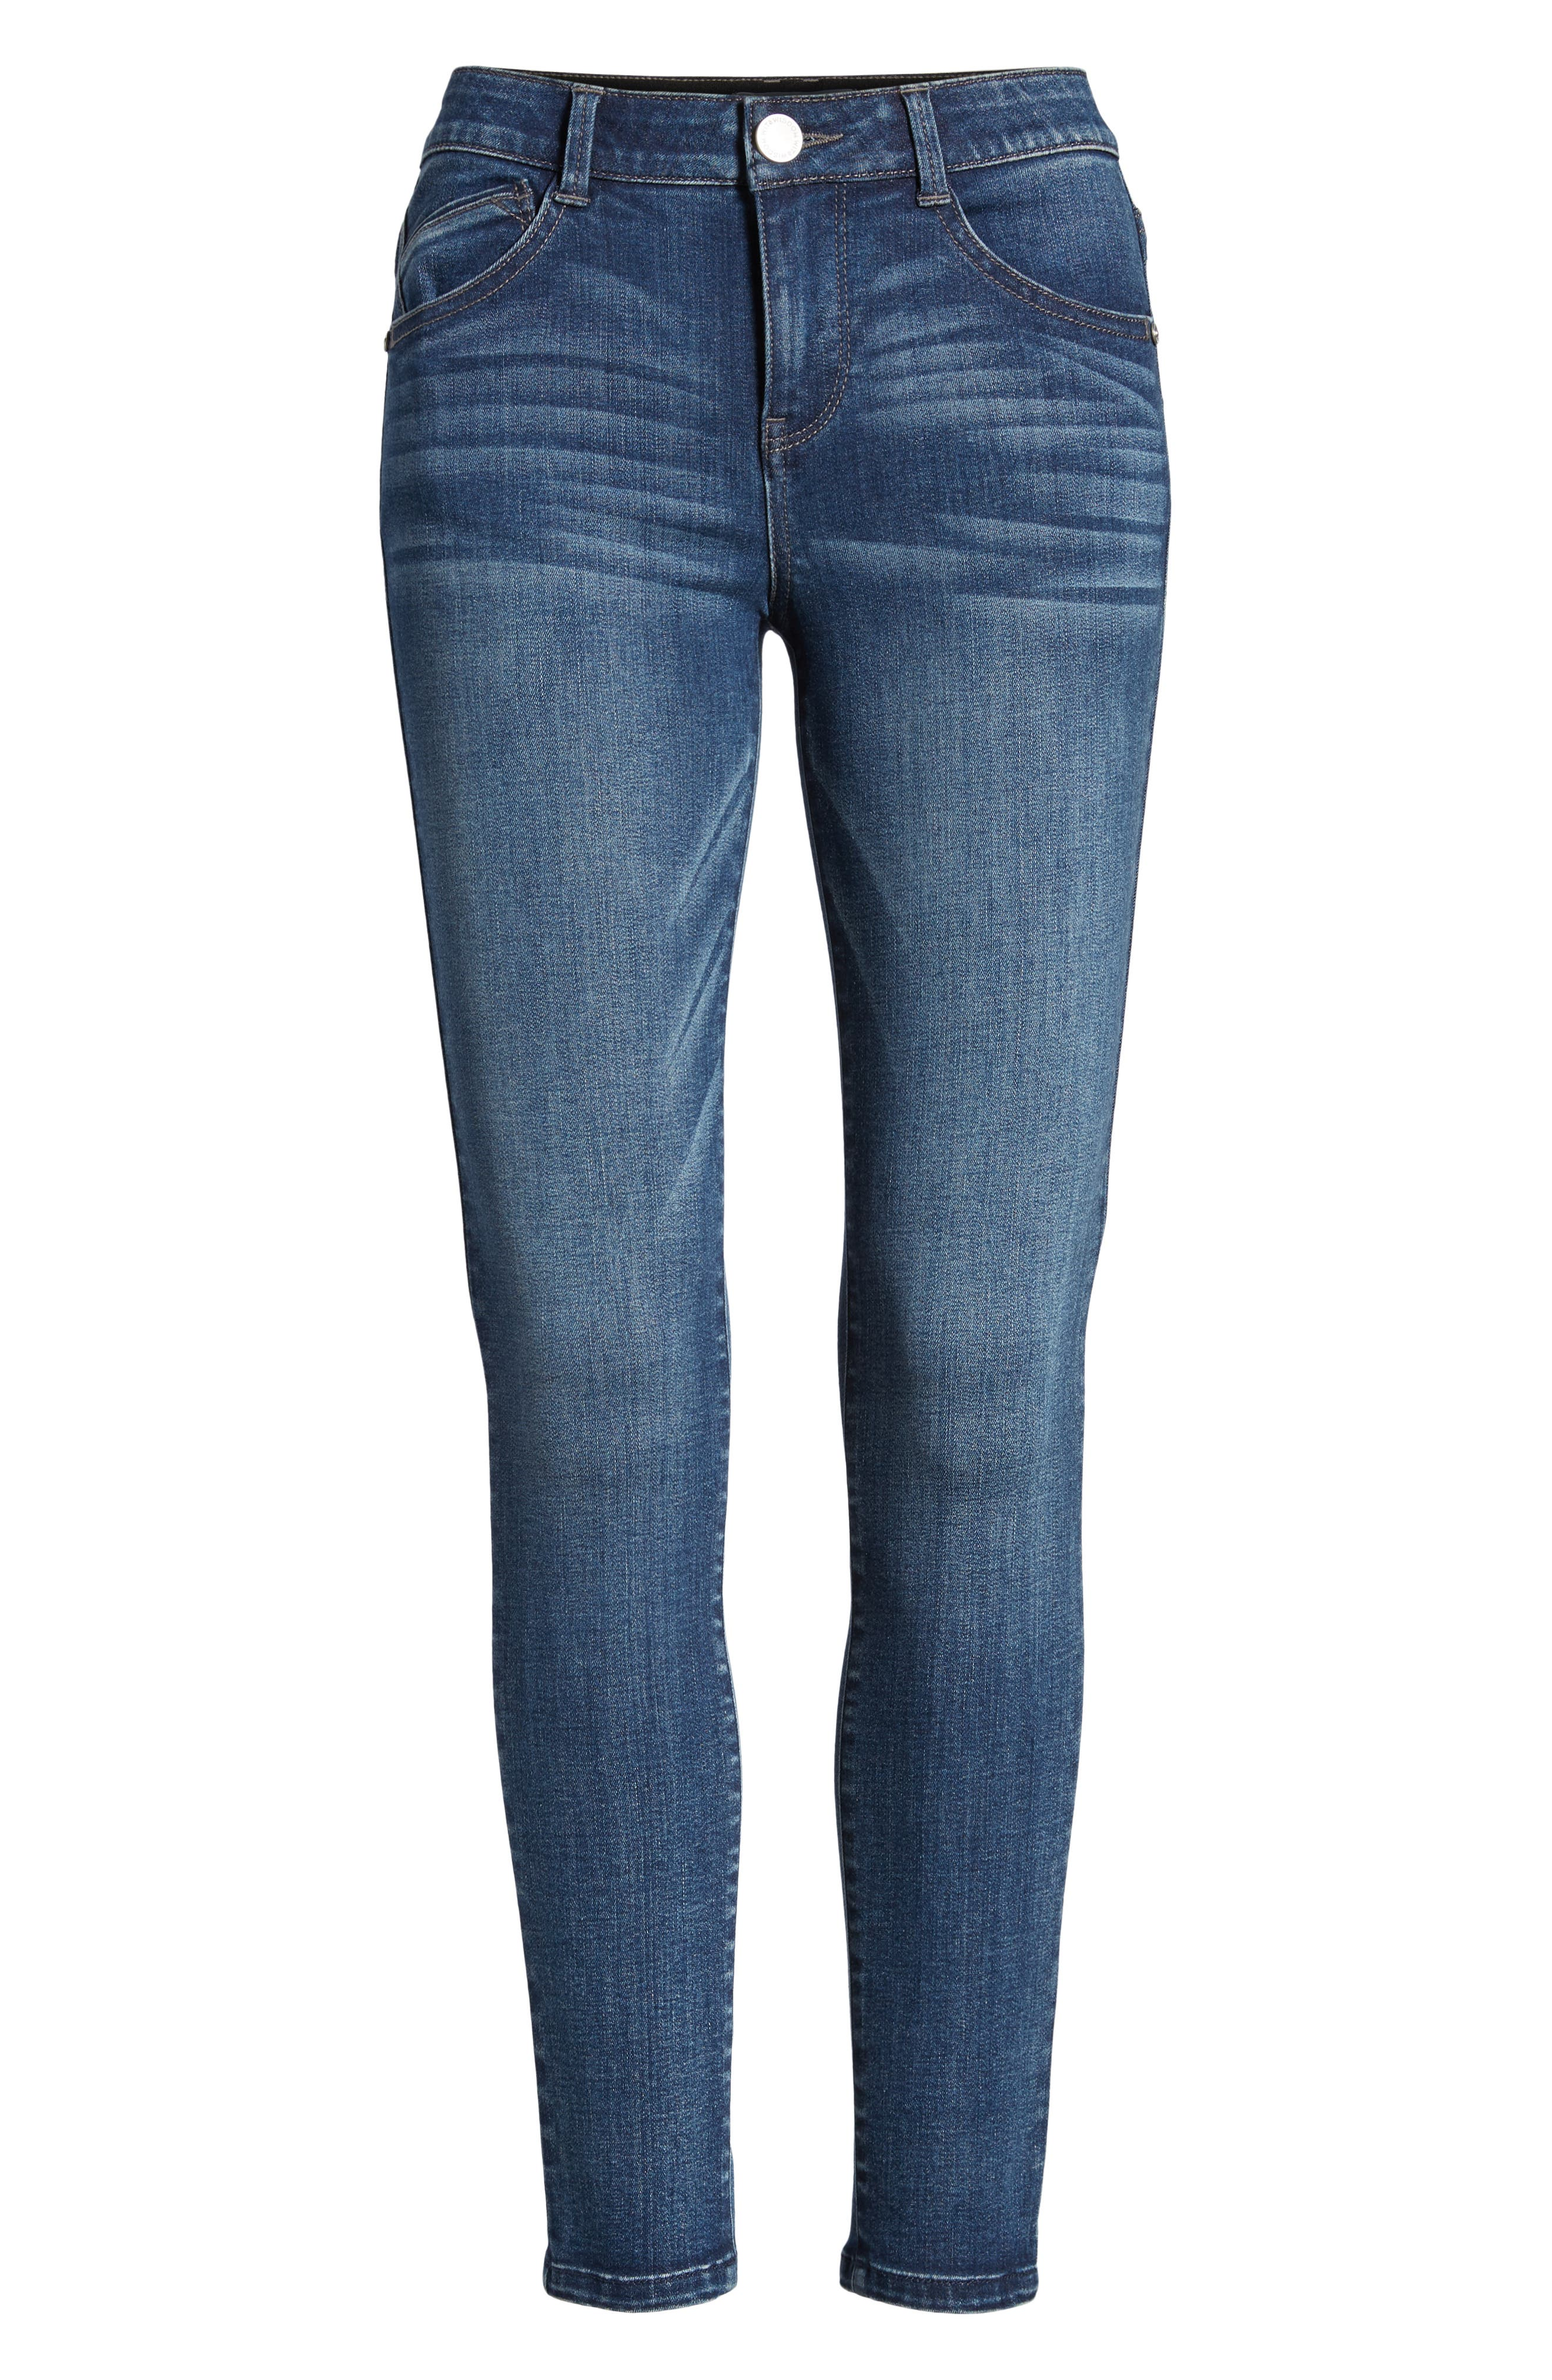 Ab-solution Ankle Skinny Jeans,                             Alternate thumbnail 7, color,                             BLUE